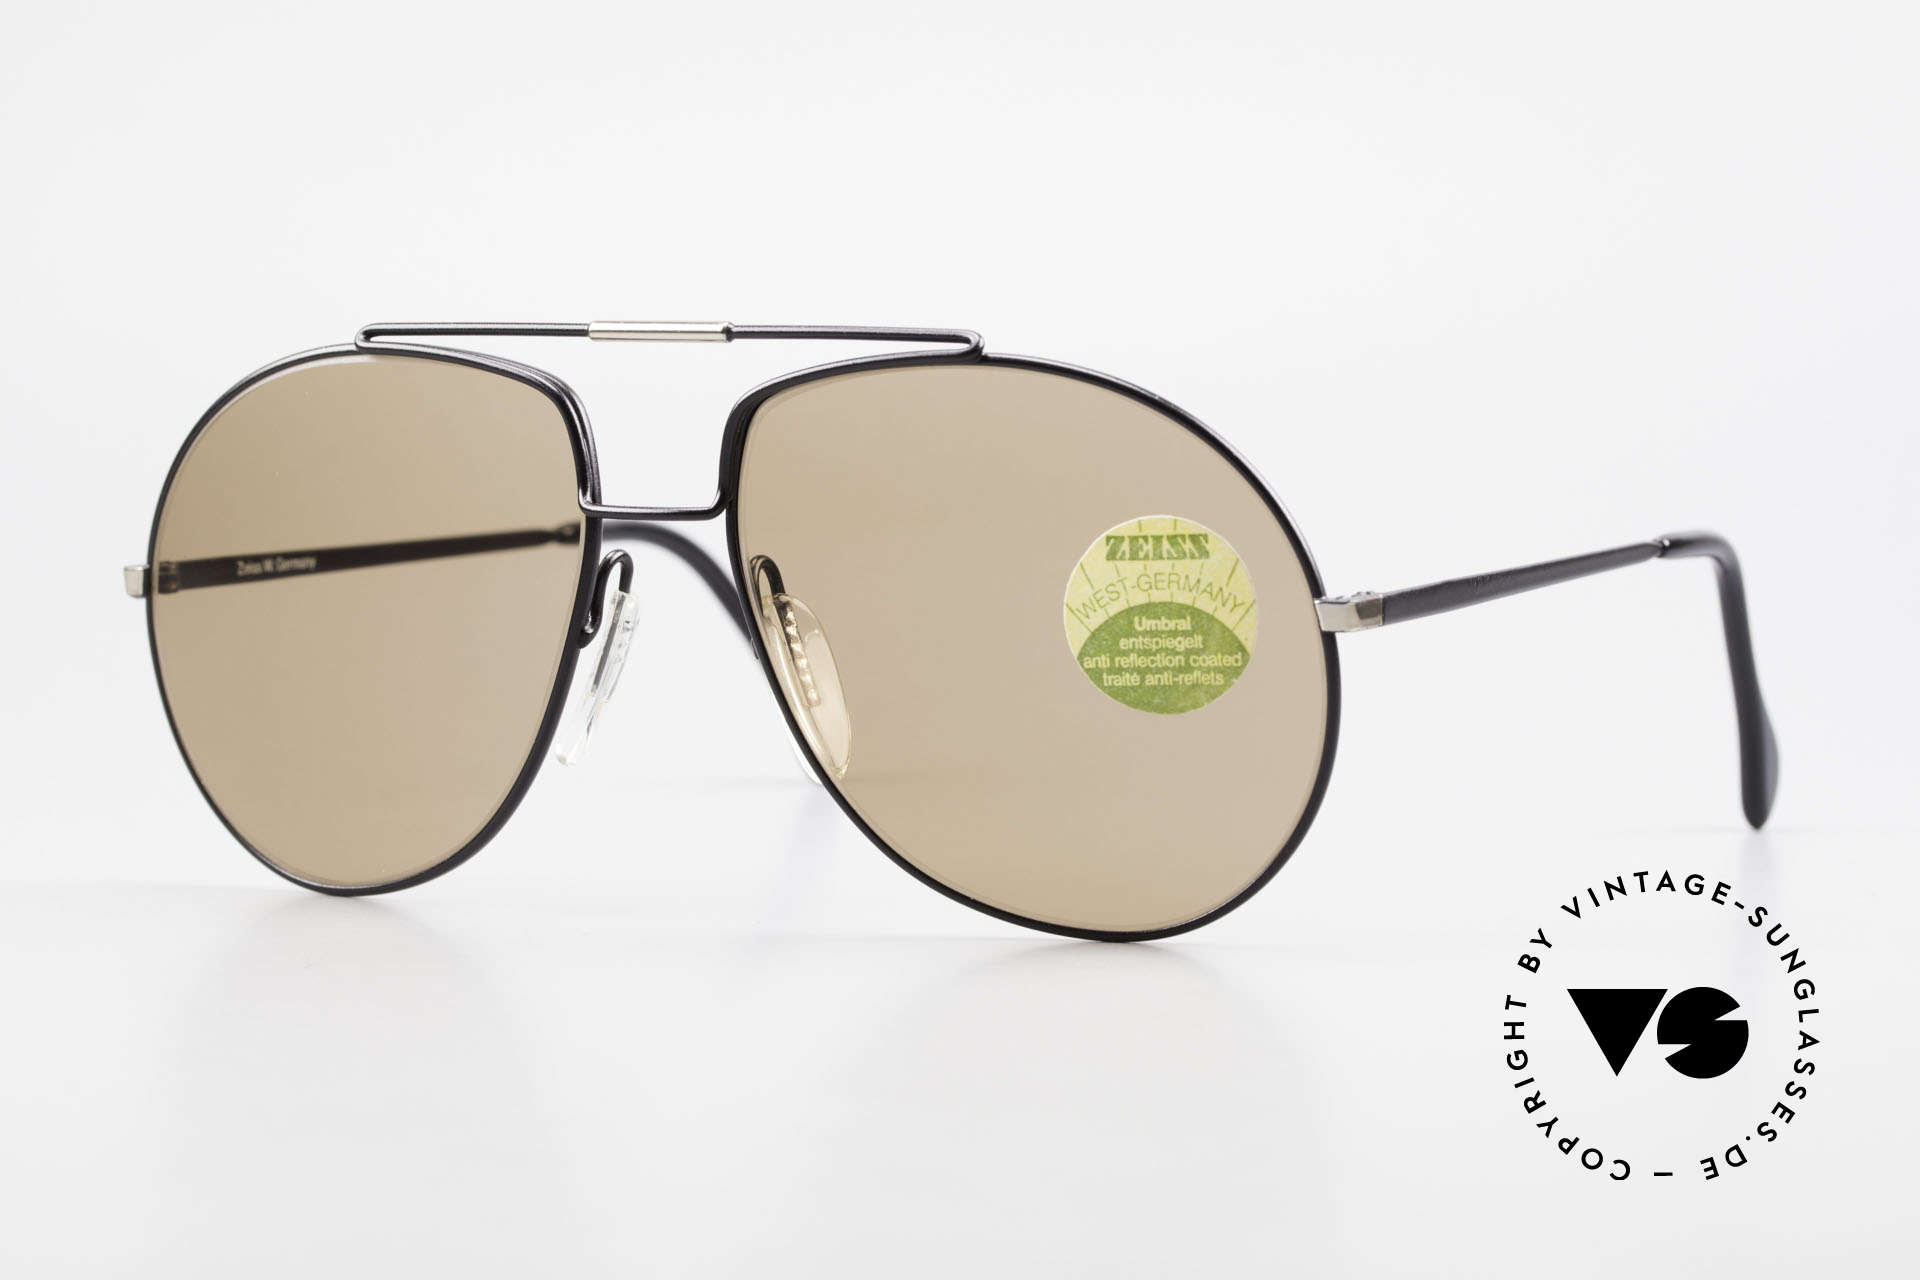 Zeiss 9369 80's Umbral Mineral Lenses, timeless, classic Zeiss vintage sunglasses of the 1980's, Made for Men